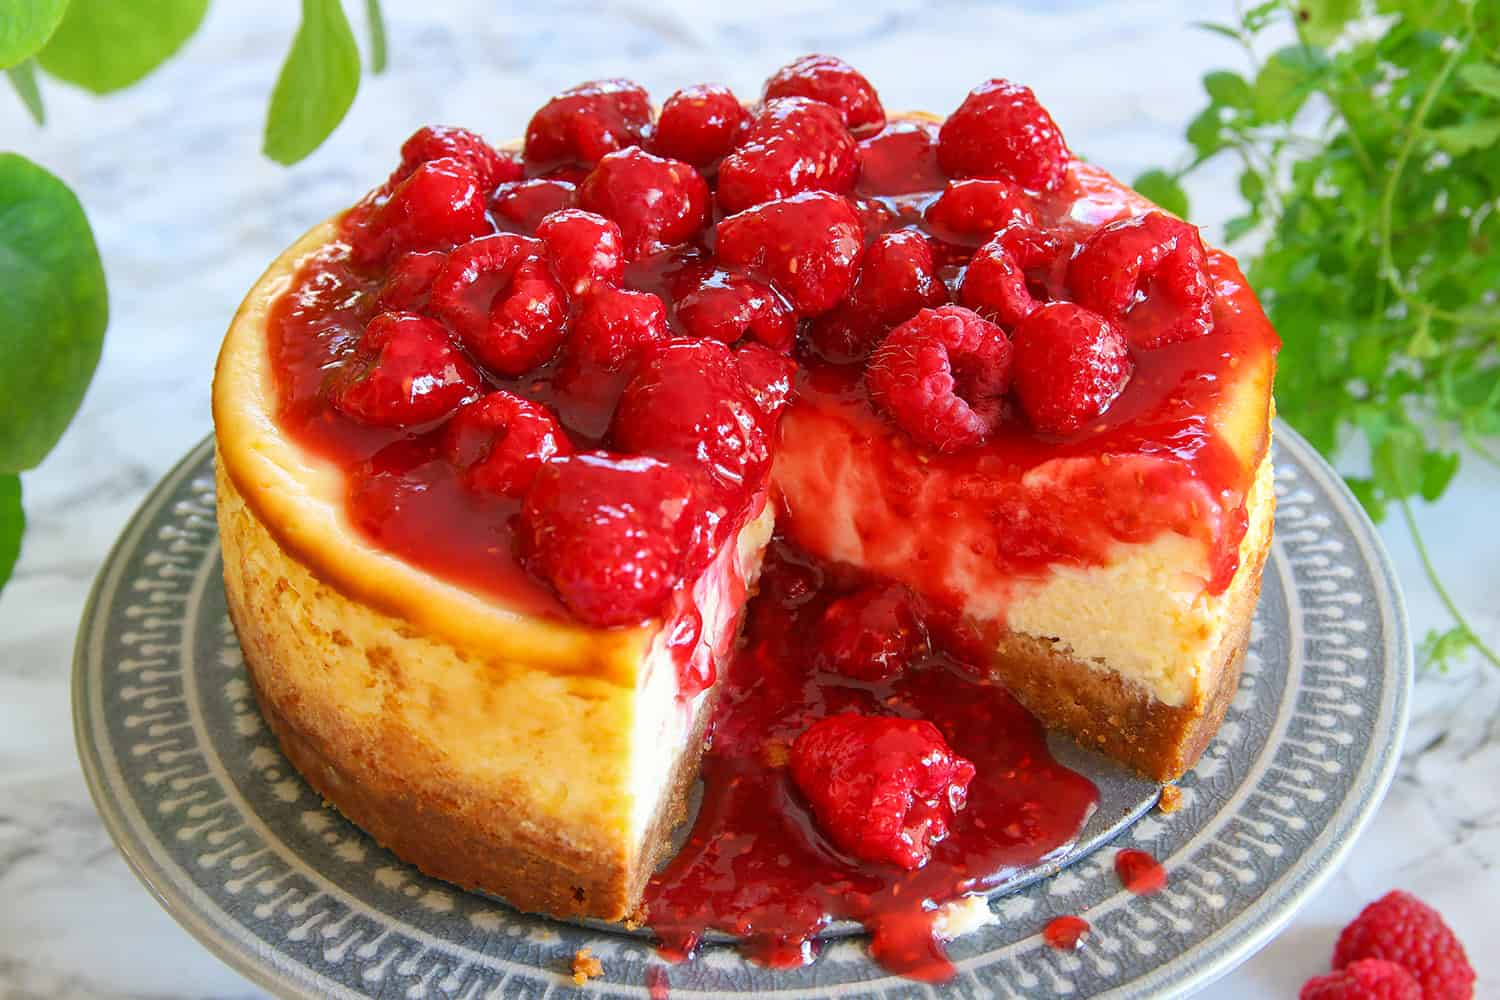 Gluten Free Baked New York Cheesecake Recipe With Raspberry Topping